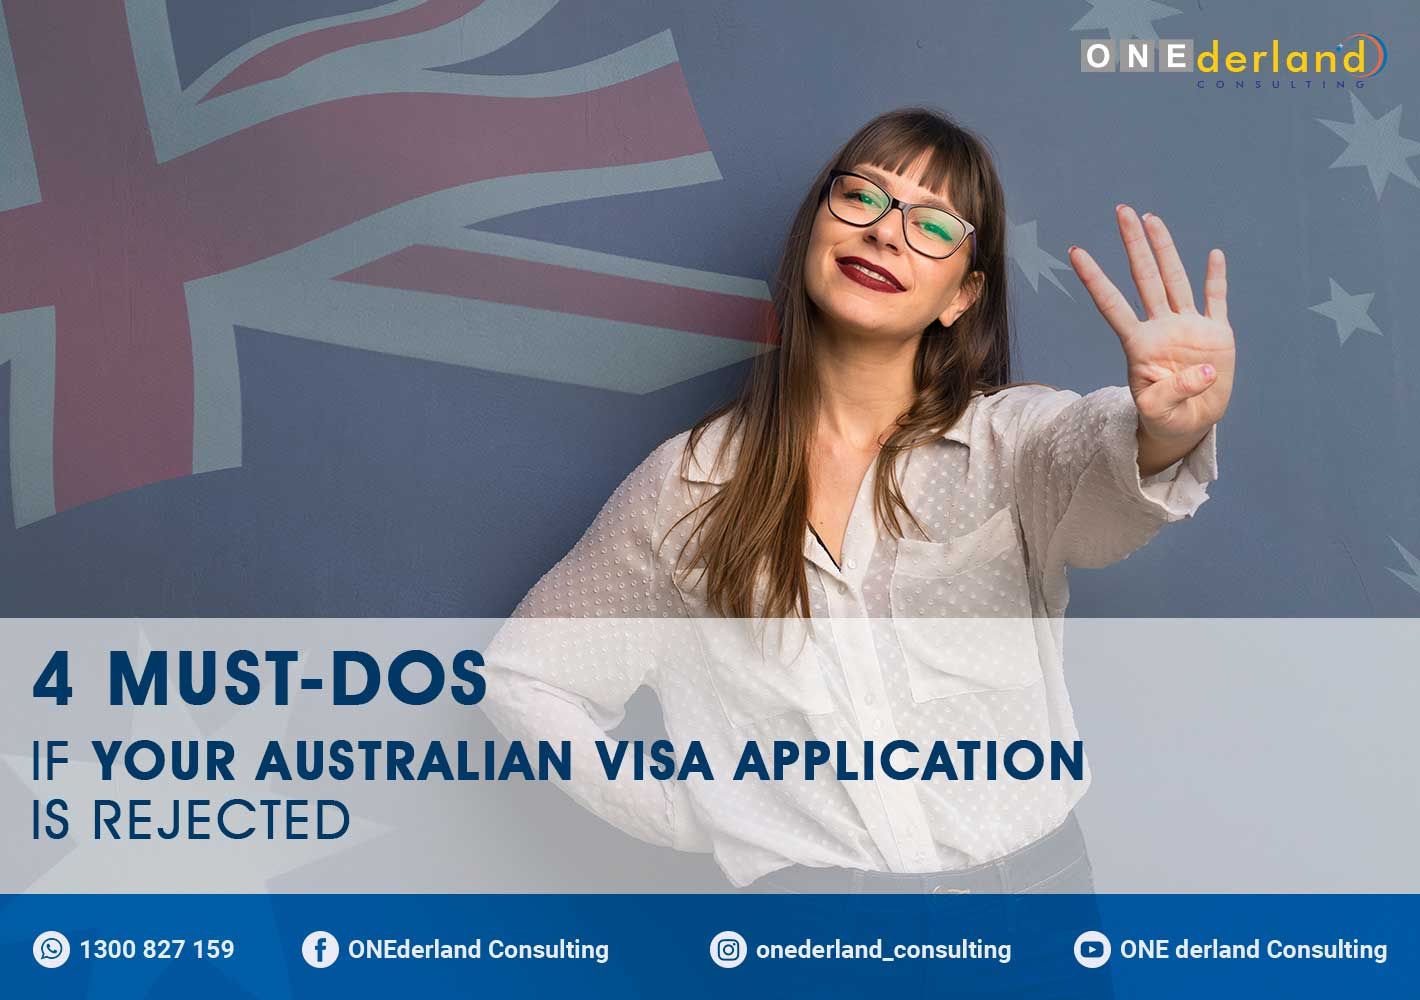 4 Must-Dos if Your Australian Visa Application is Rejected